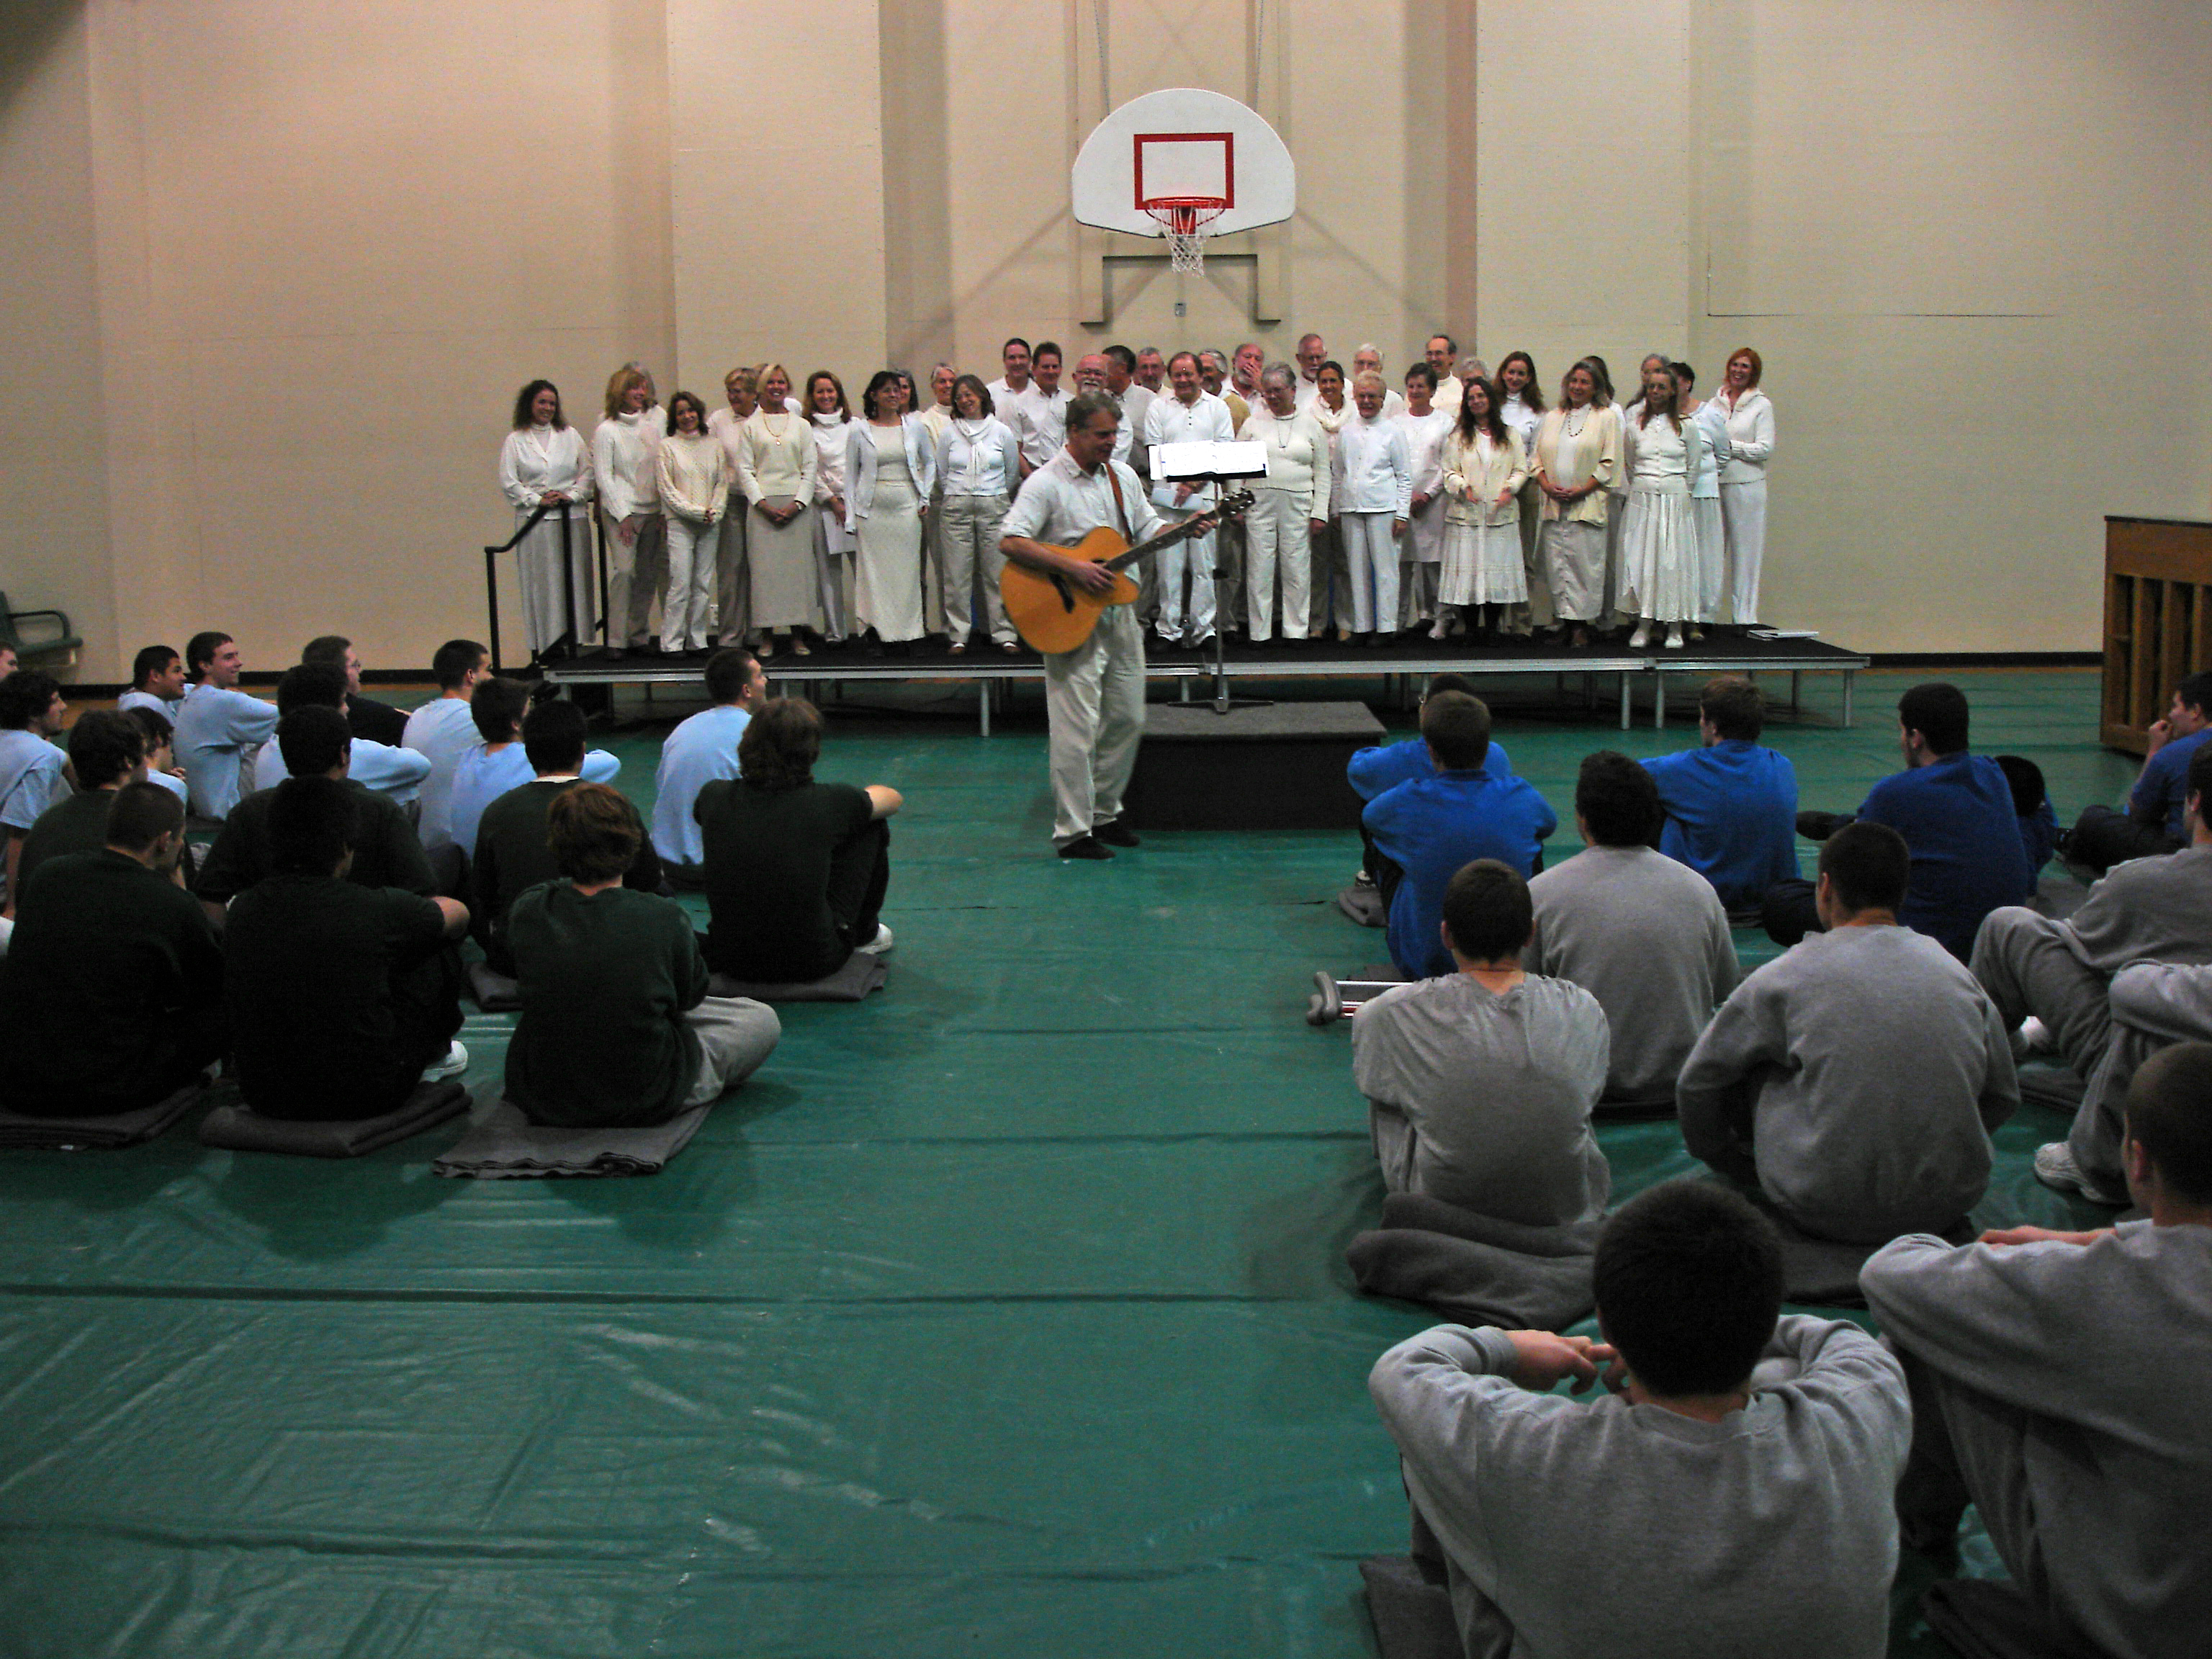 Choir singing at youth correctional facility